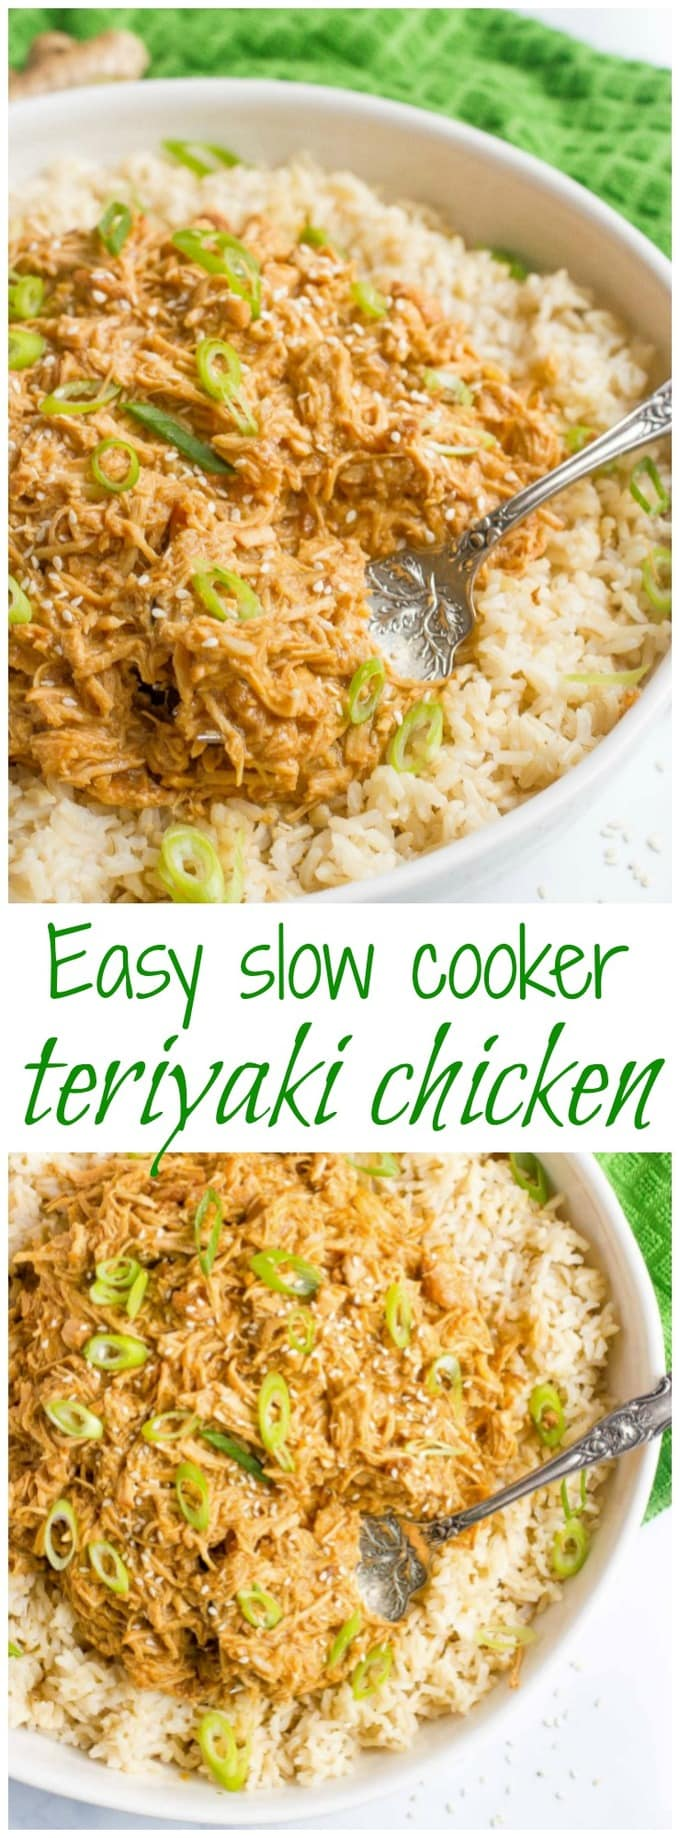 Slow cooker teriyaki chicken - a super easy, and healthy, dinner with a silky smooth rich sauce!